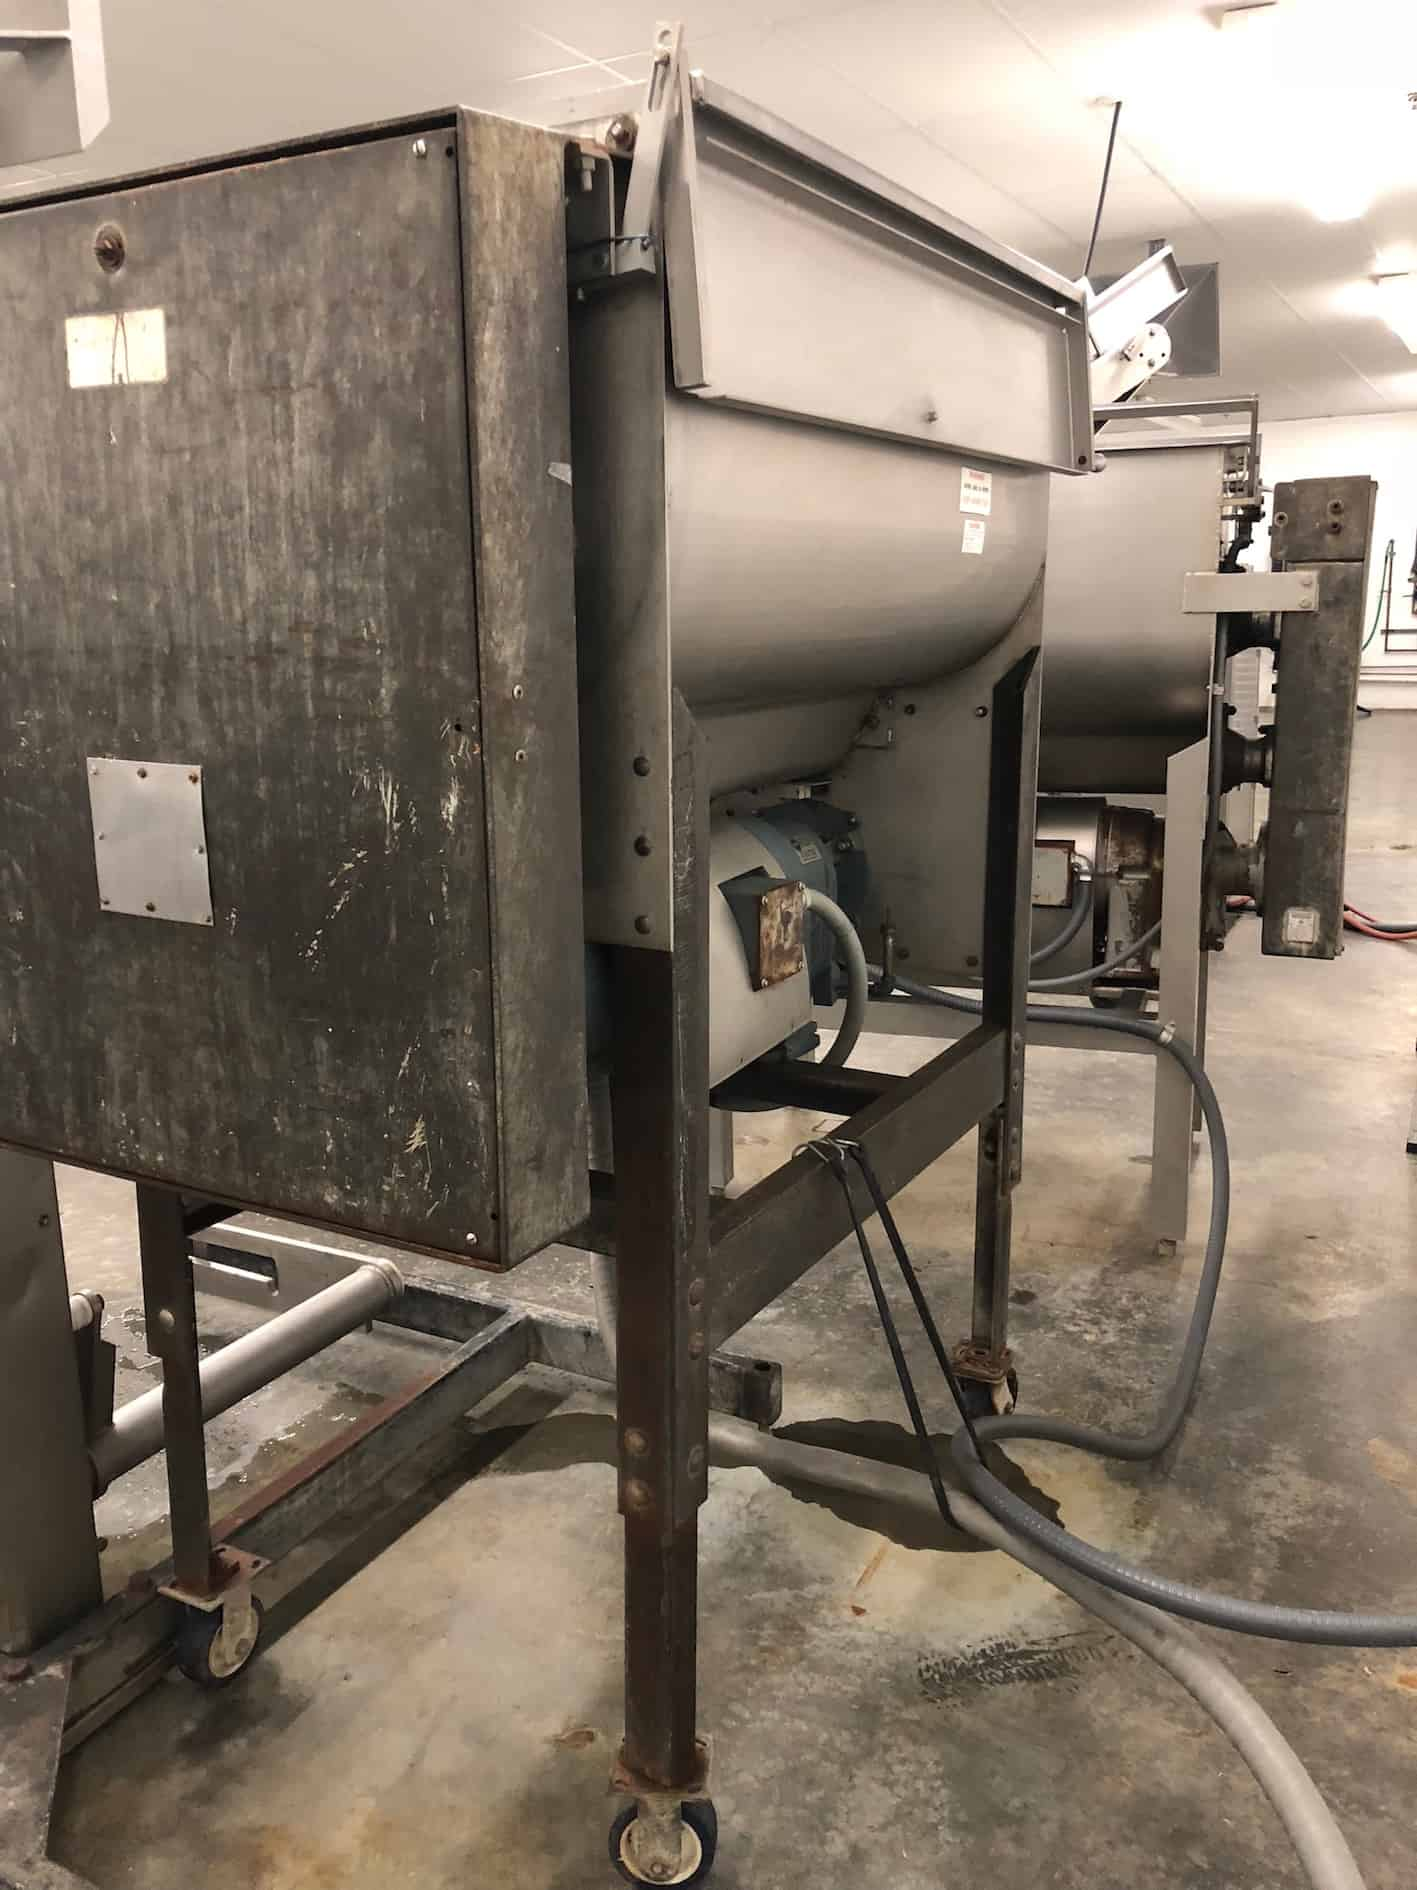 Hobart Grinder, Model 4356, Serial Number 11–097-814, 5 -15 HP, 1725 RPM, 220 V 60 Hz Three Phase (Unit on Right) (Shown Cycling) (DISMANTLED FOR CLEANING. UNIT COMPLETE AND IN OPERATING CONDITION)